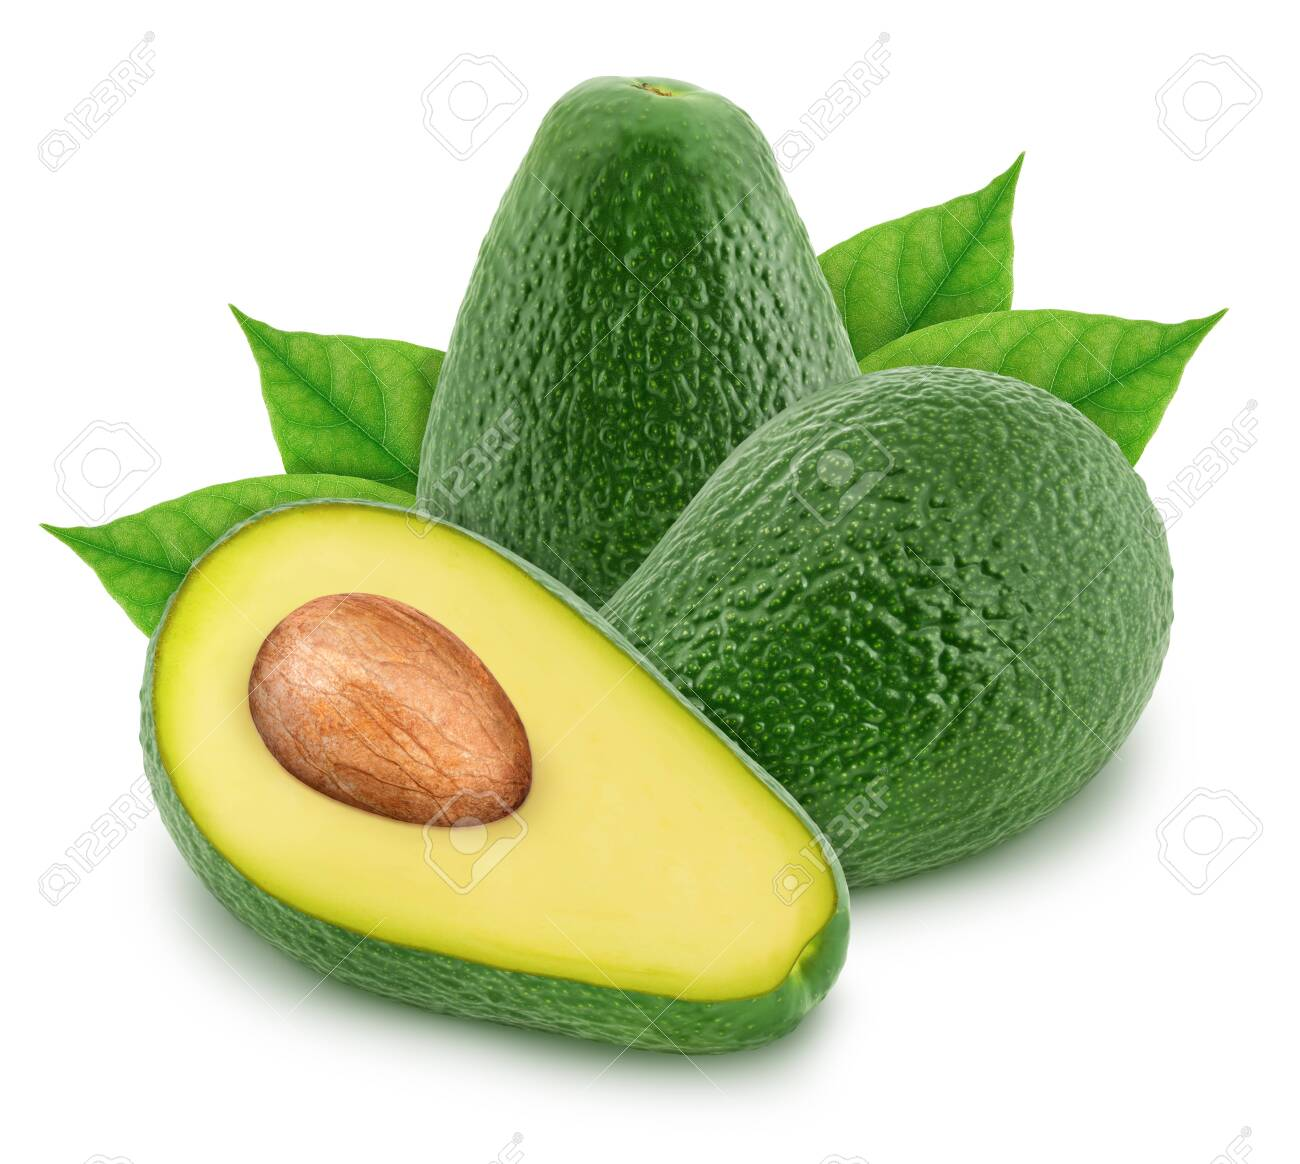 Composition with green avocados isolated on white background - 123754145